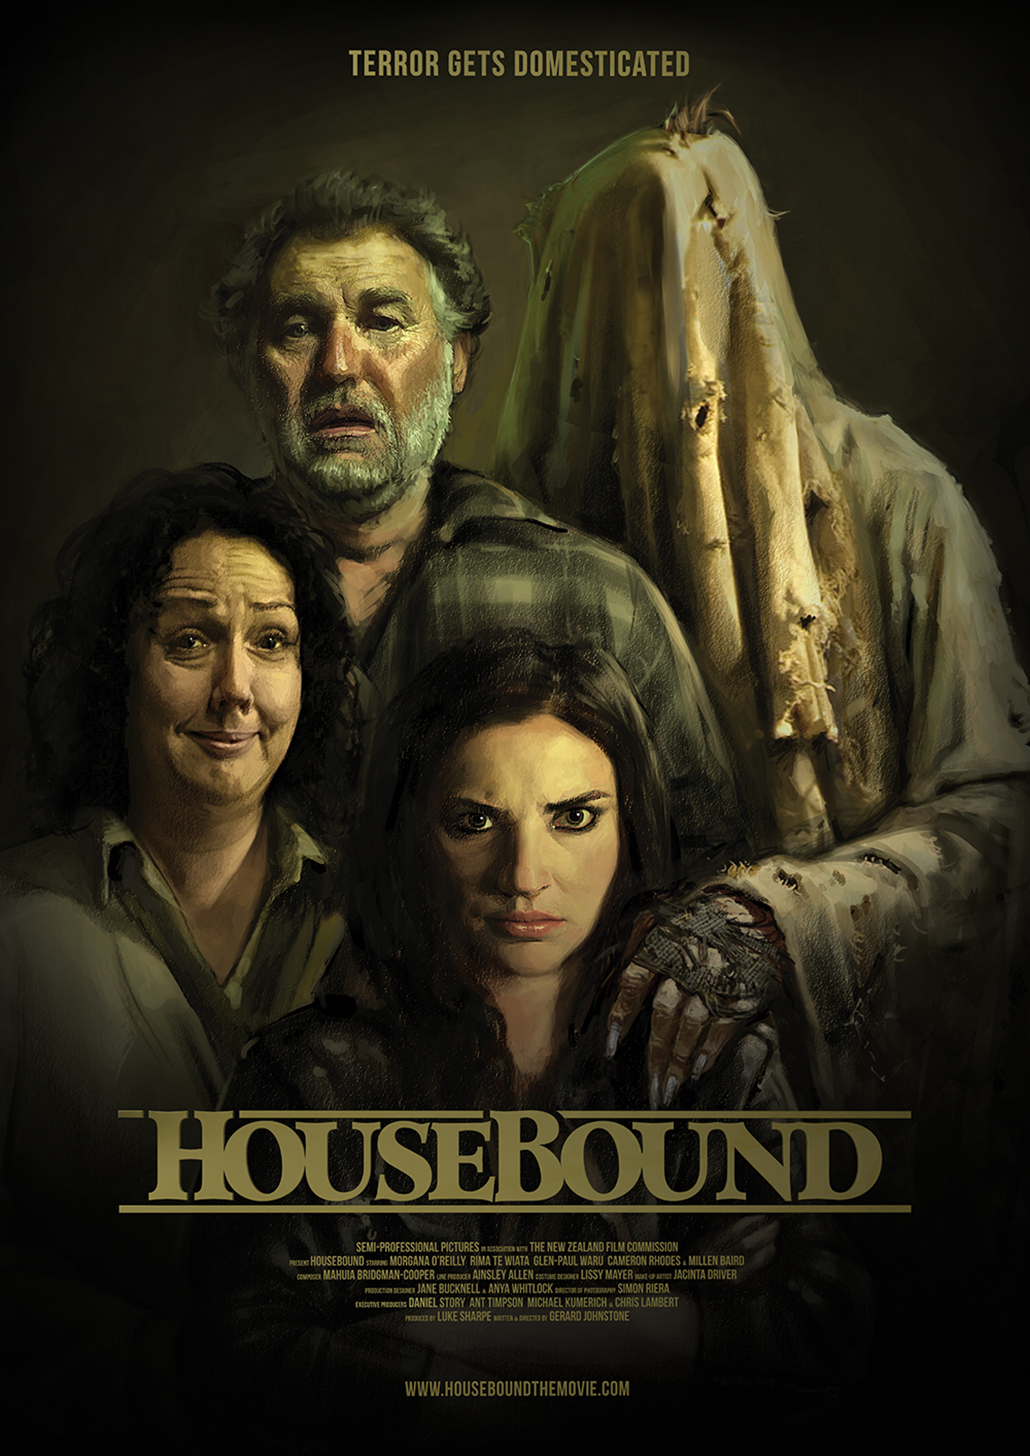 Housebound film review – Bad Taste meets Wes Craven